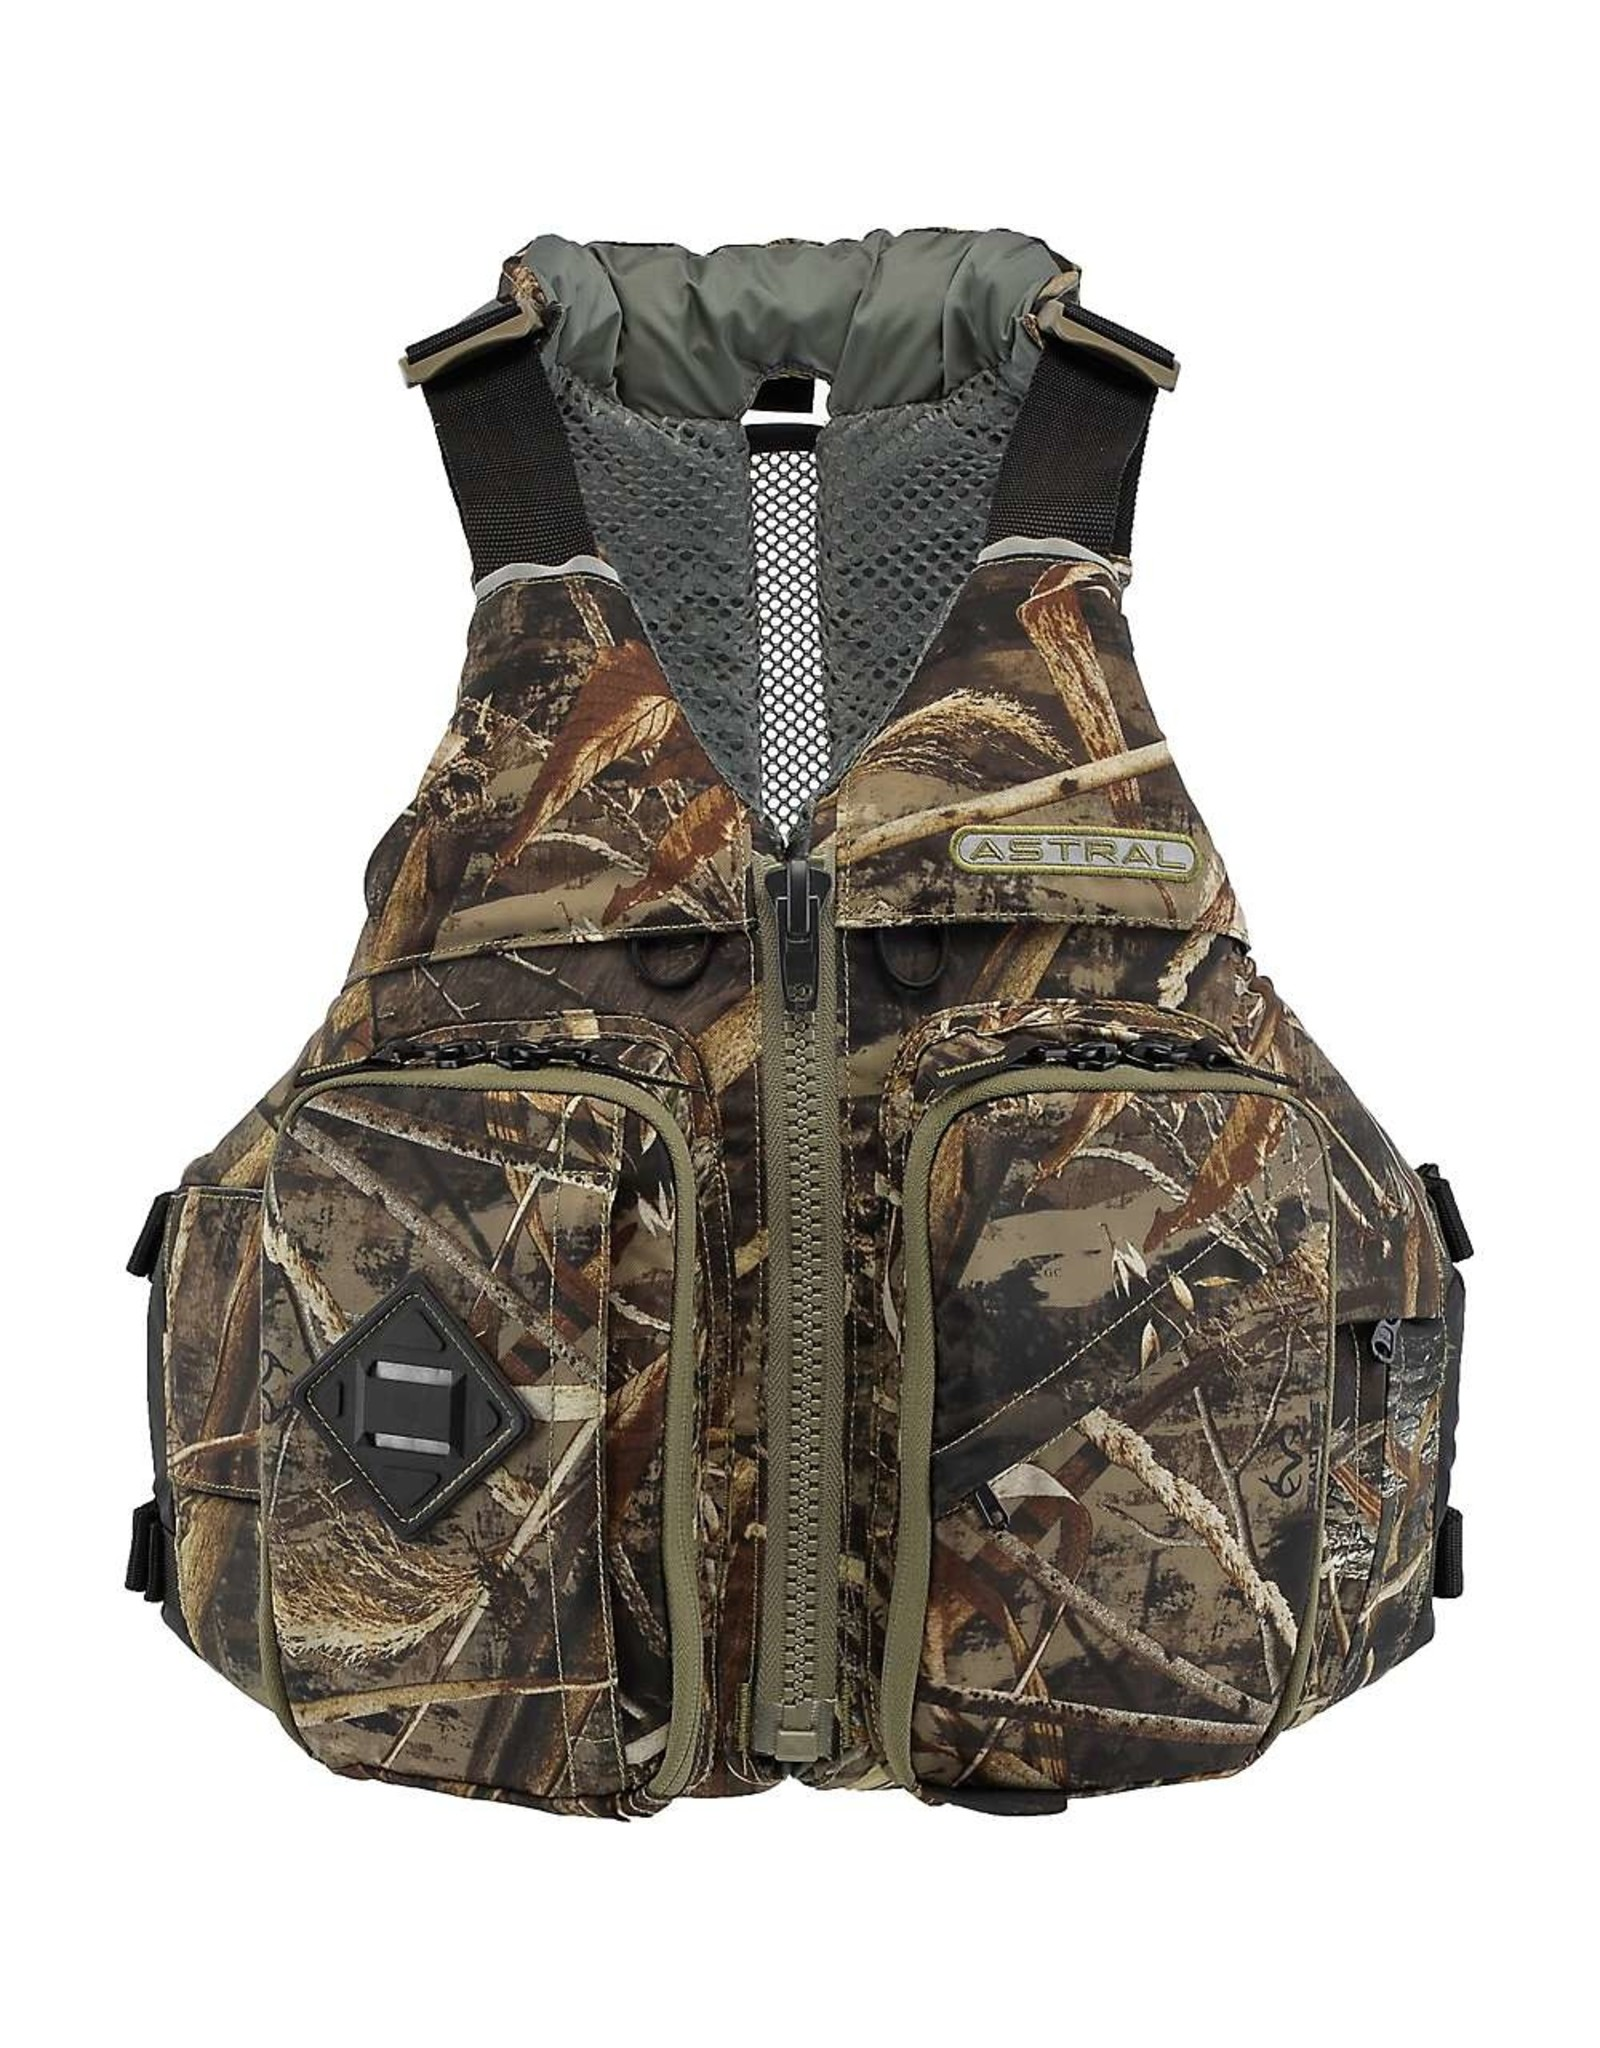 Astral Designs RONNY FISHER PFD RealTree Max-5 Camo M/L